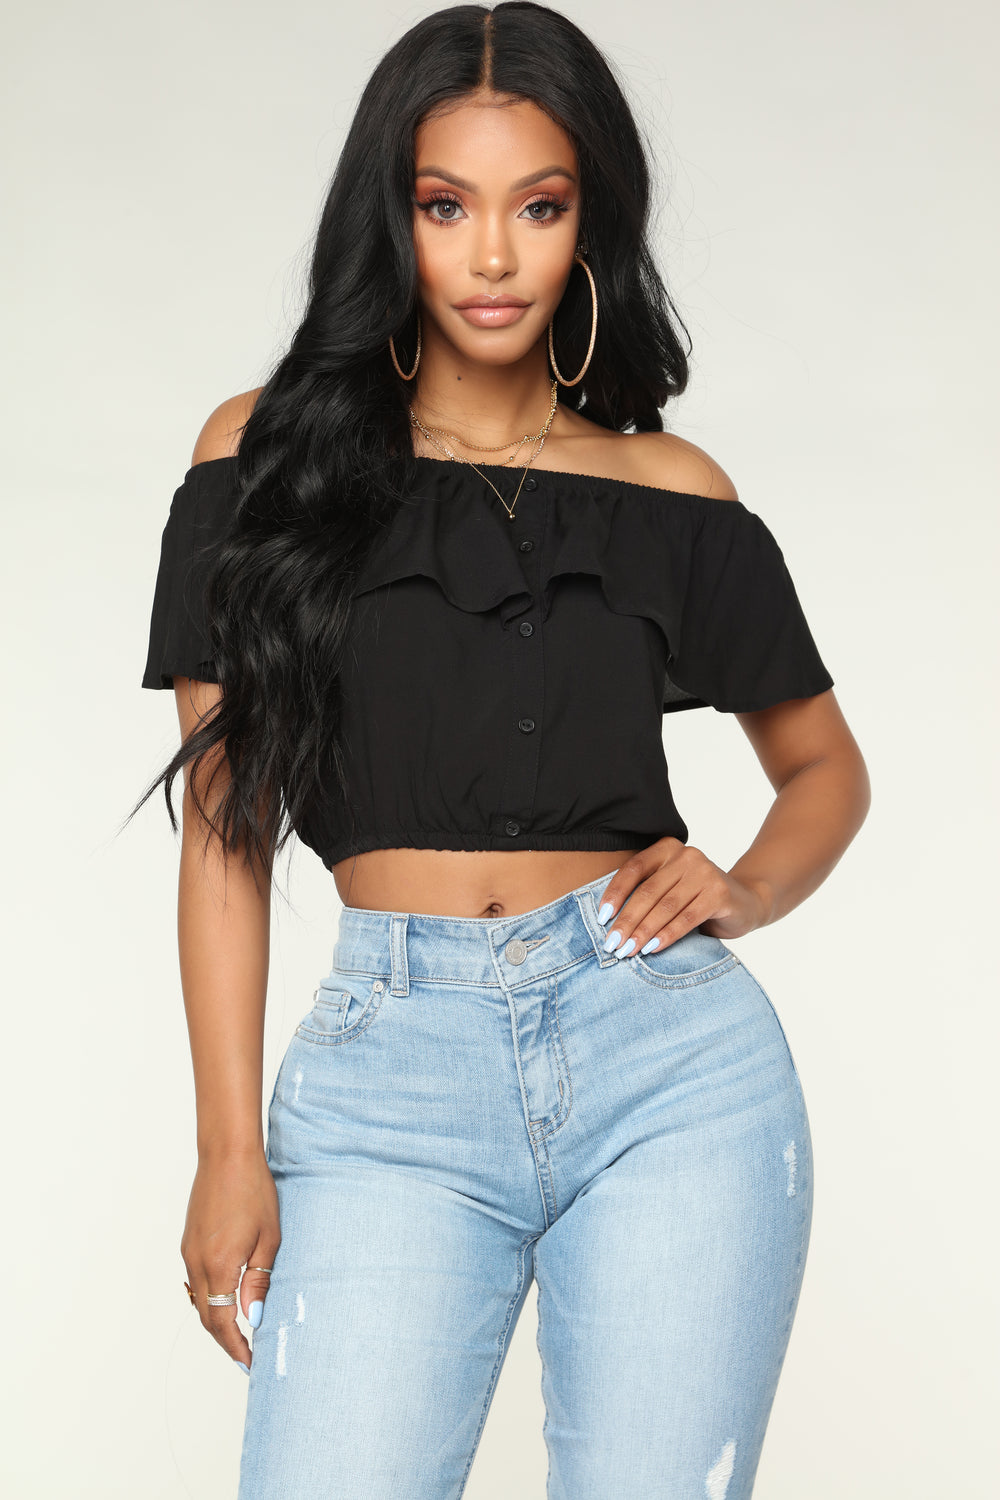 Forever Your Lady Top - Black